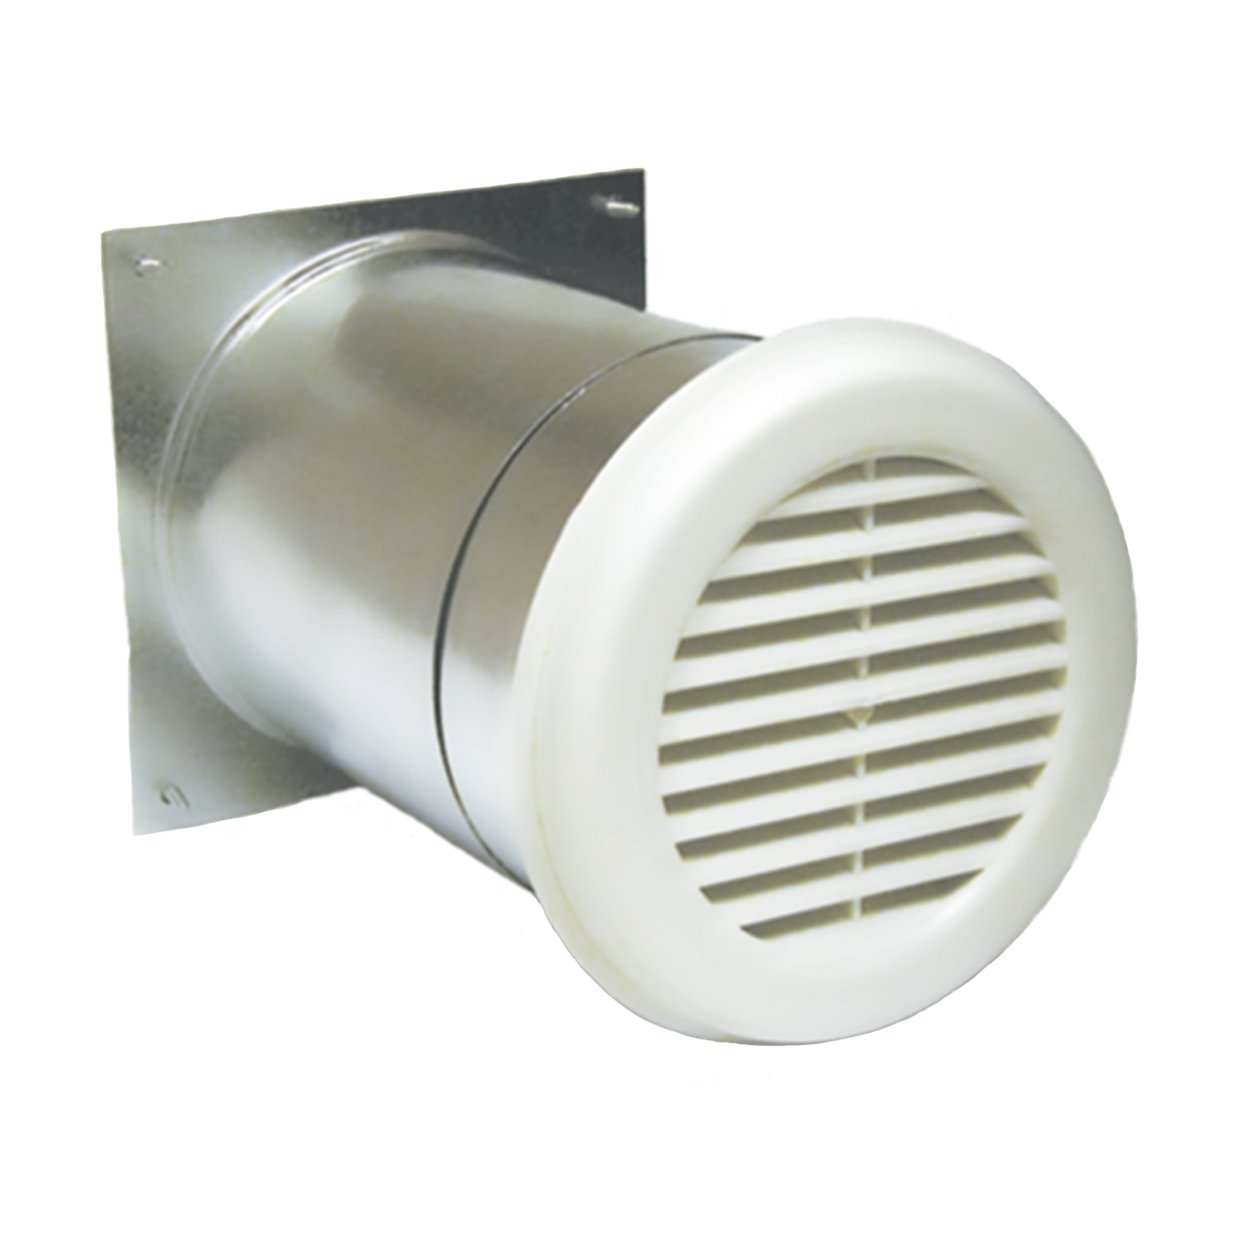 """AIRLET 200 Fresh Air Inlet with Aluminum Exterior Grille (5""""-9"""" Telescoping Sleeve) - Passive Filtered Fresh Air Inlet For Make Up Air"""